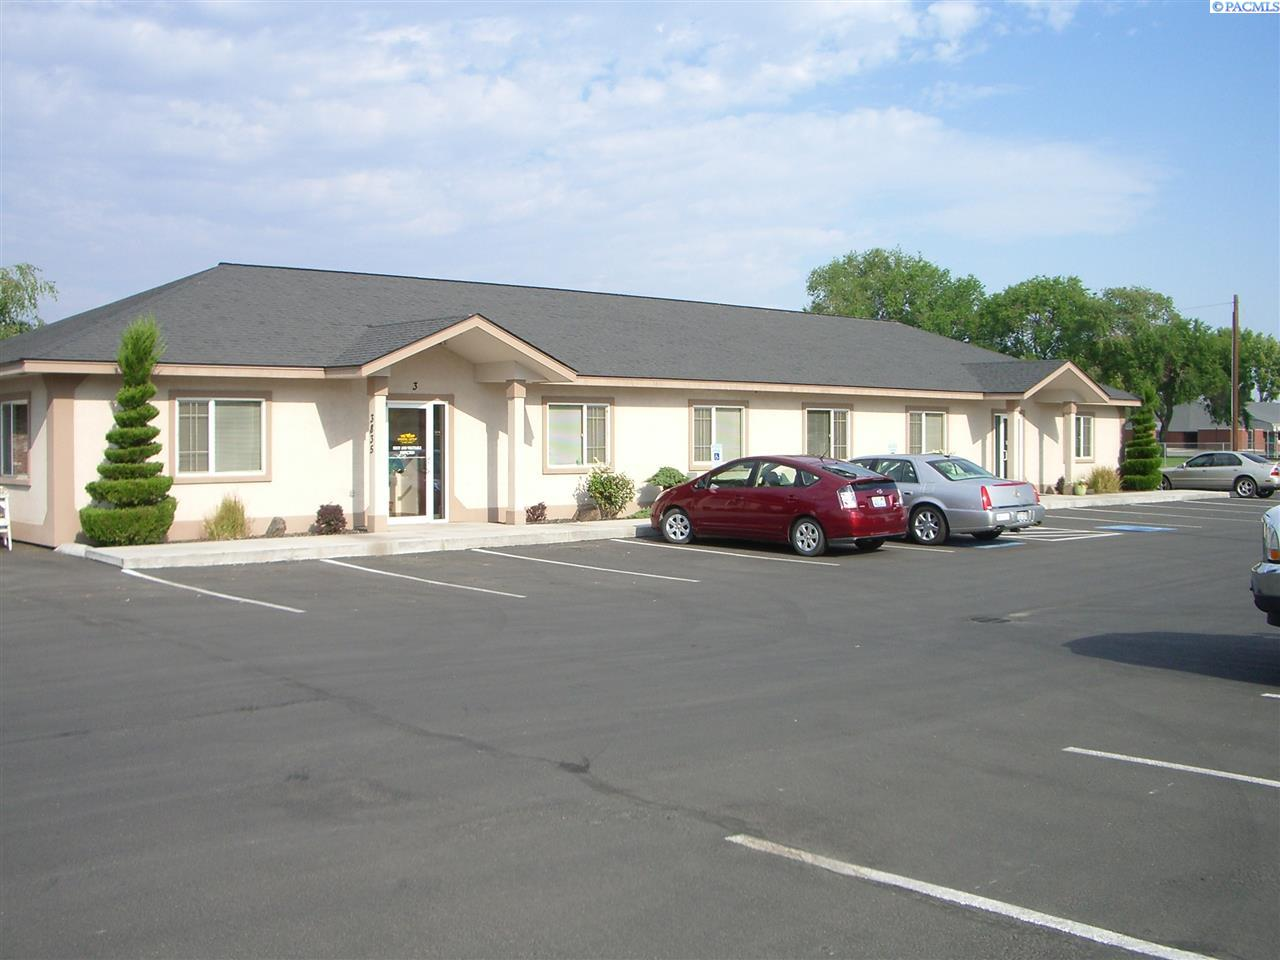 Offices for Sale at 3835 W Court St - Ste C Pasco, Washington 99301 United States